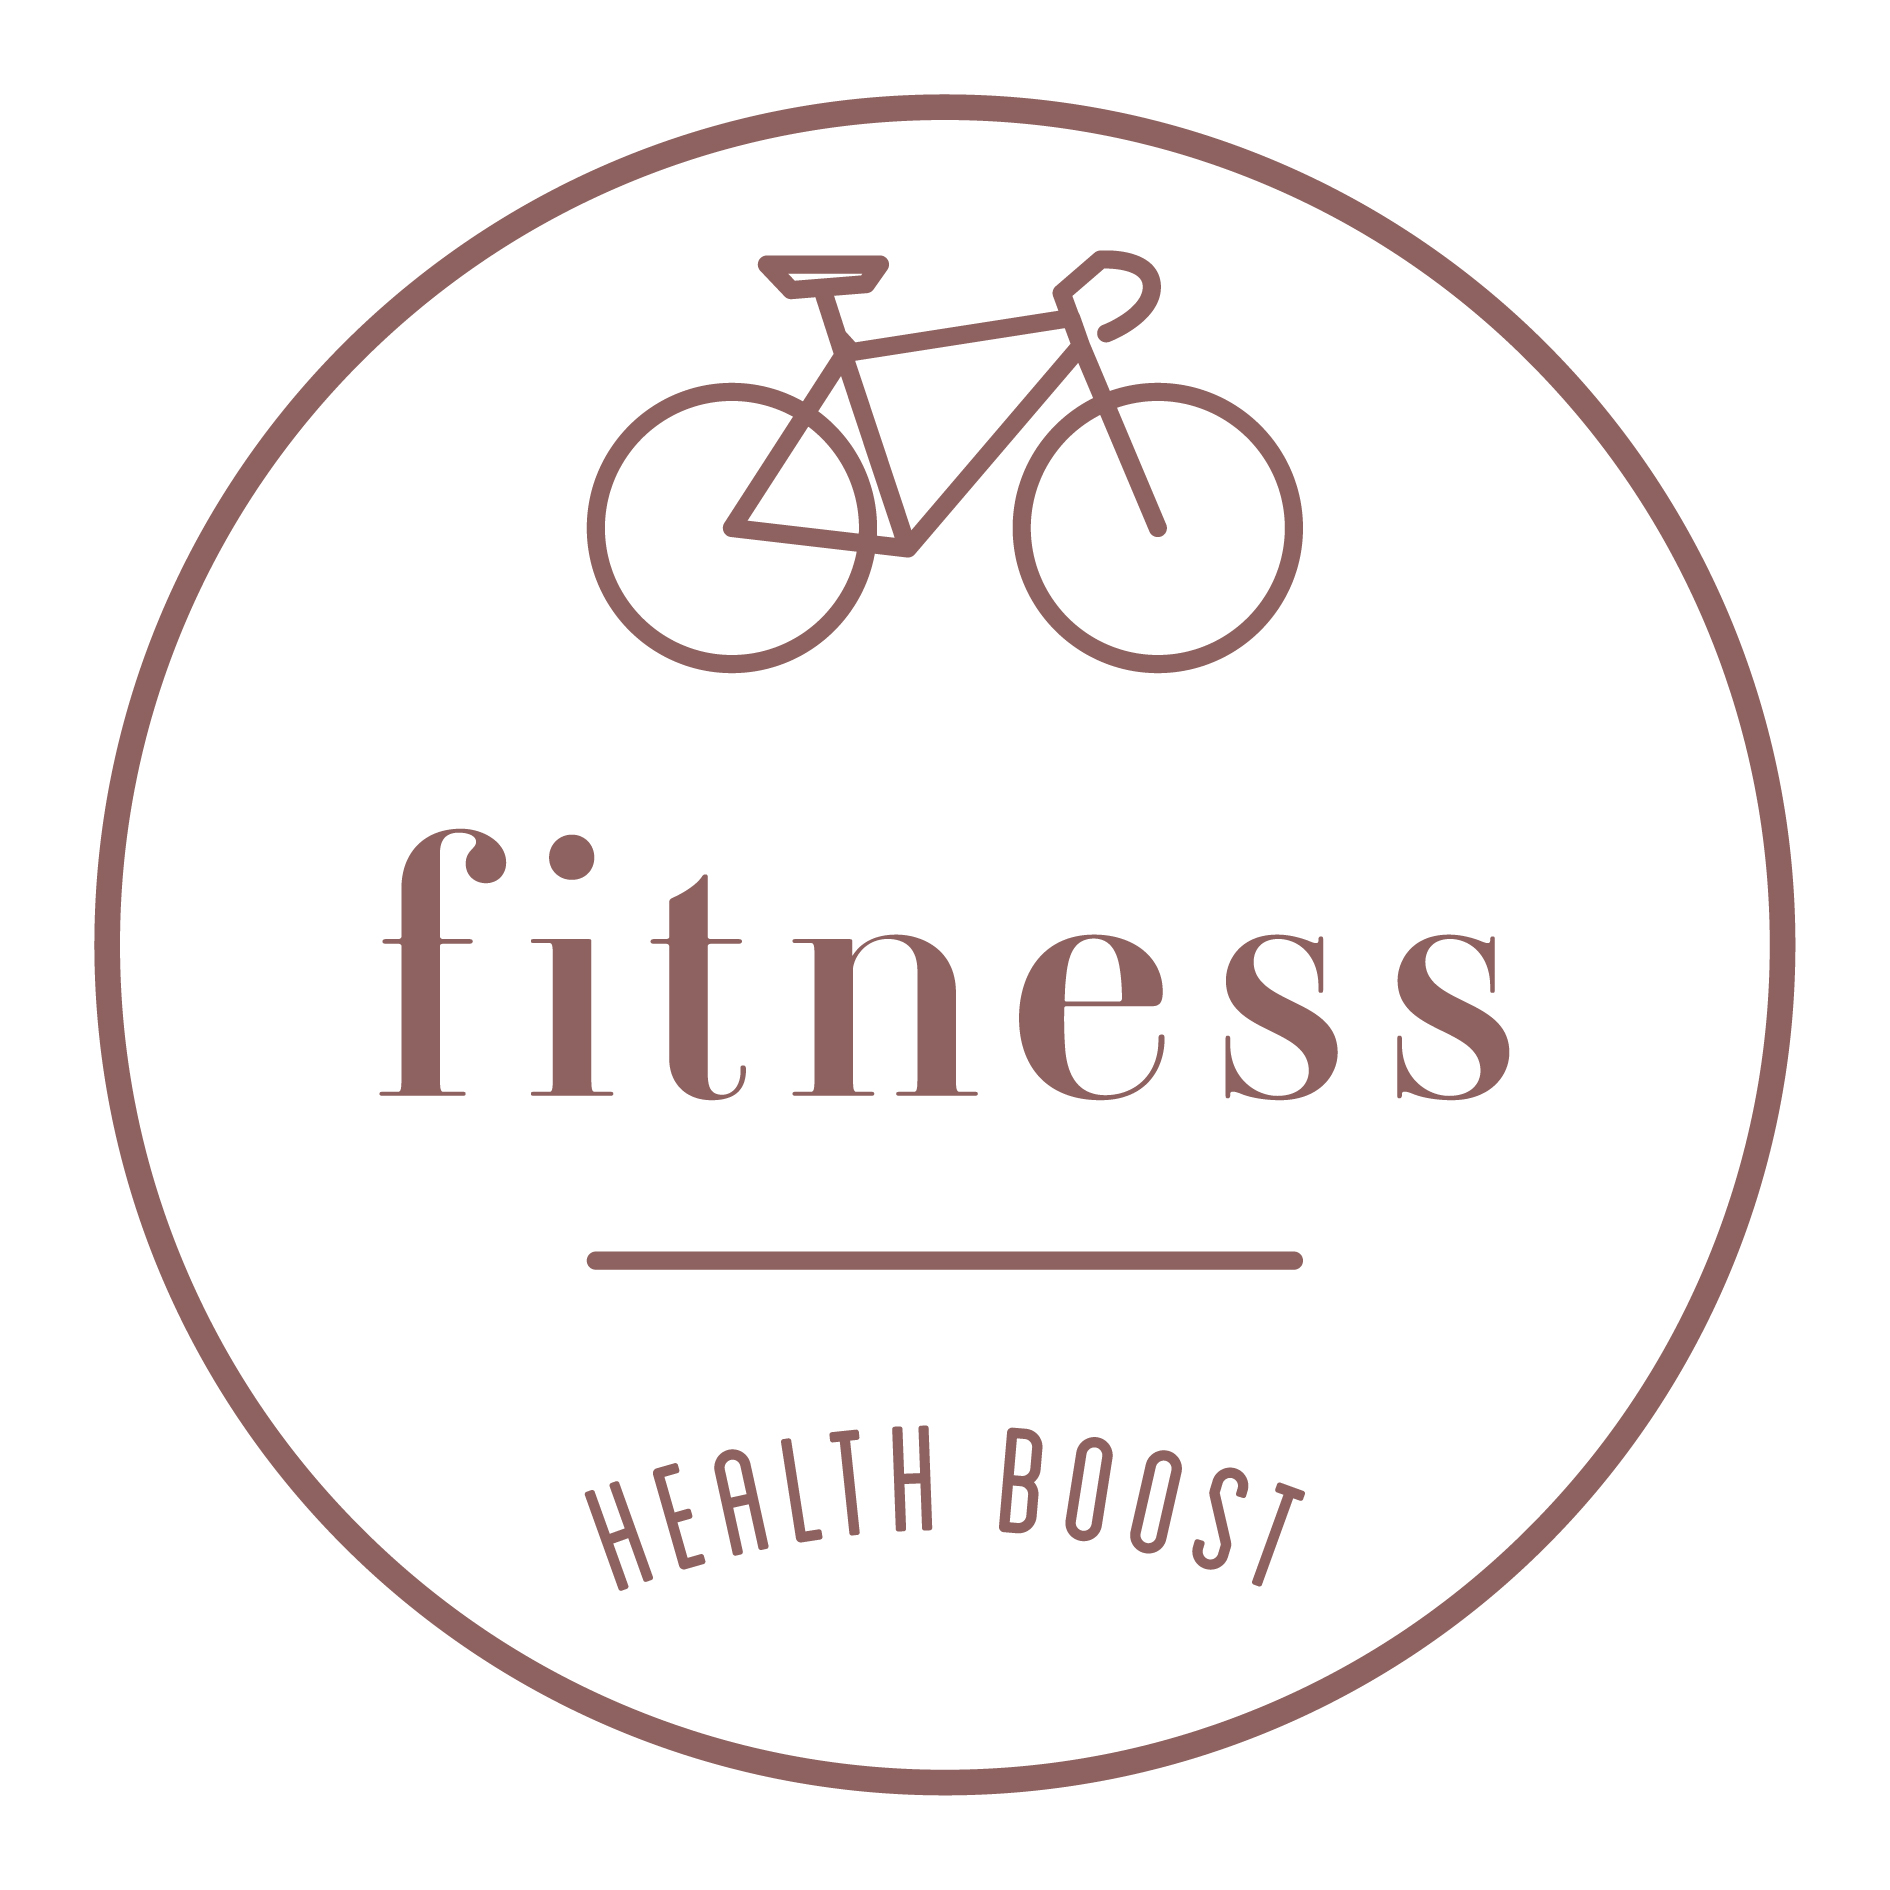 The Health Boost, health and lifestyle blog, logo design, branding and brand styling by Ditto Creative, branding agency Kent